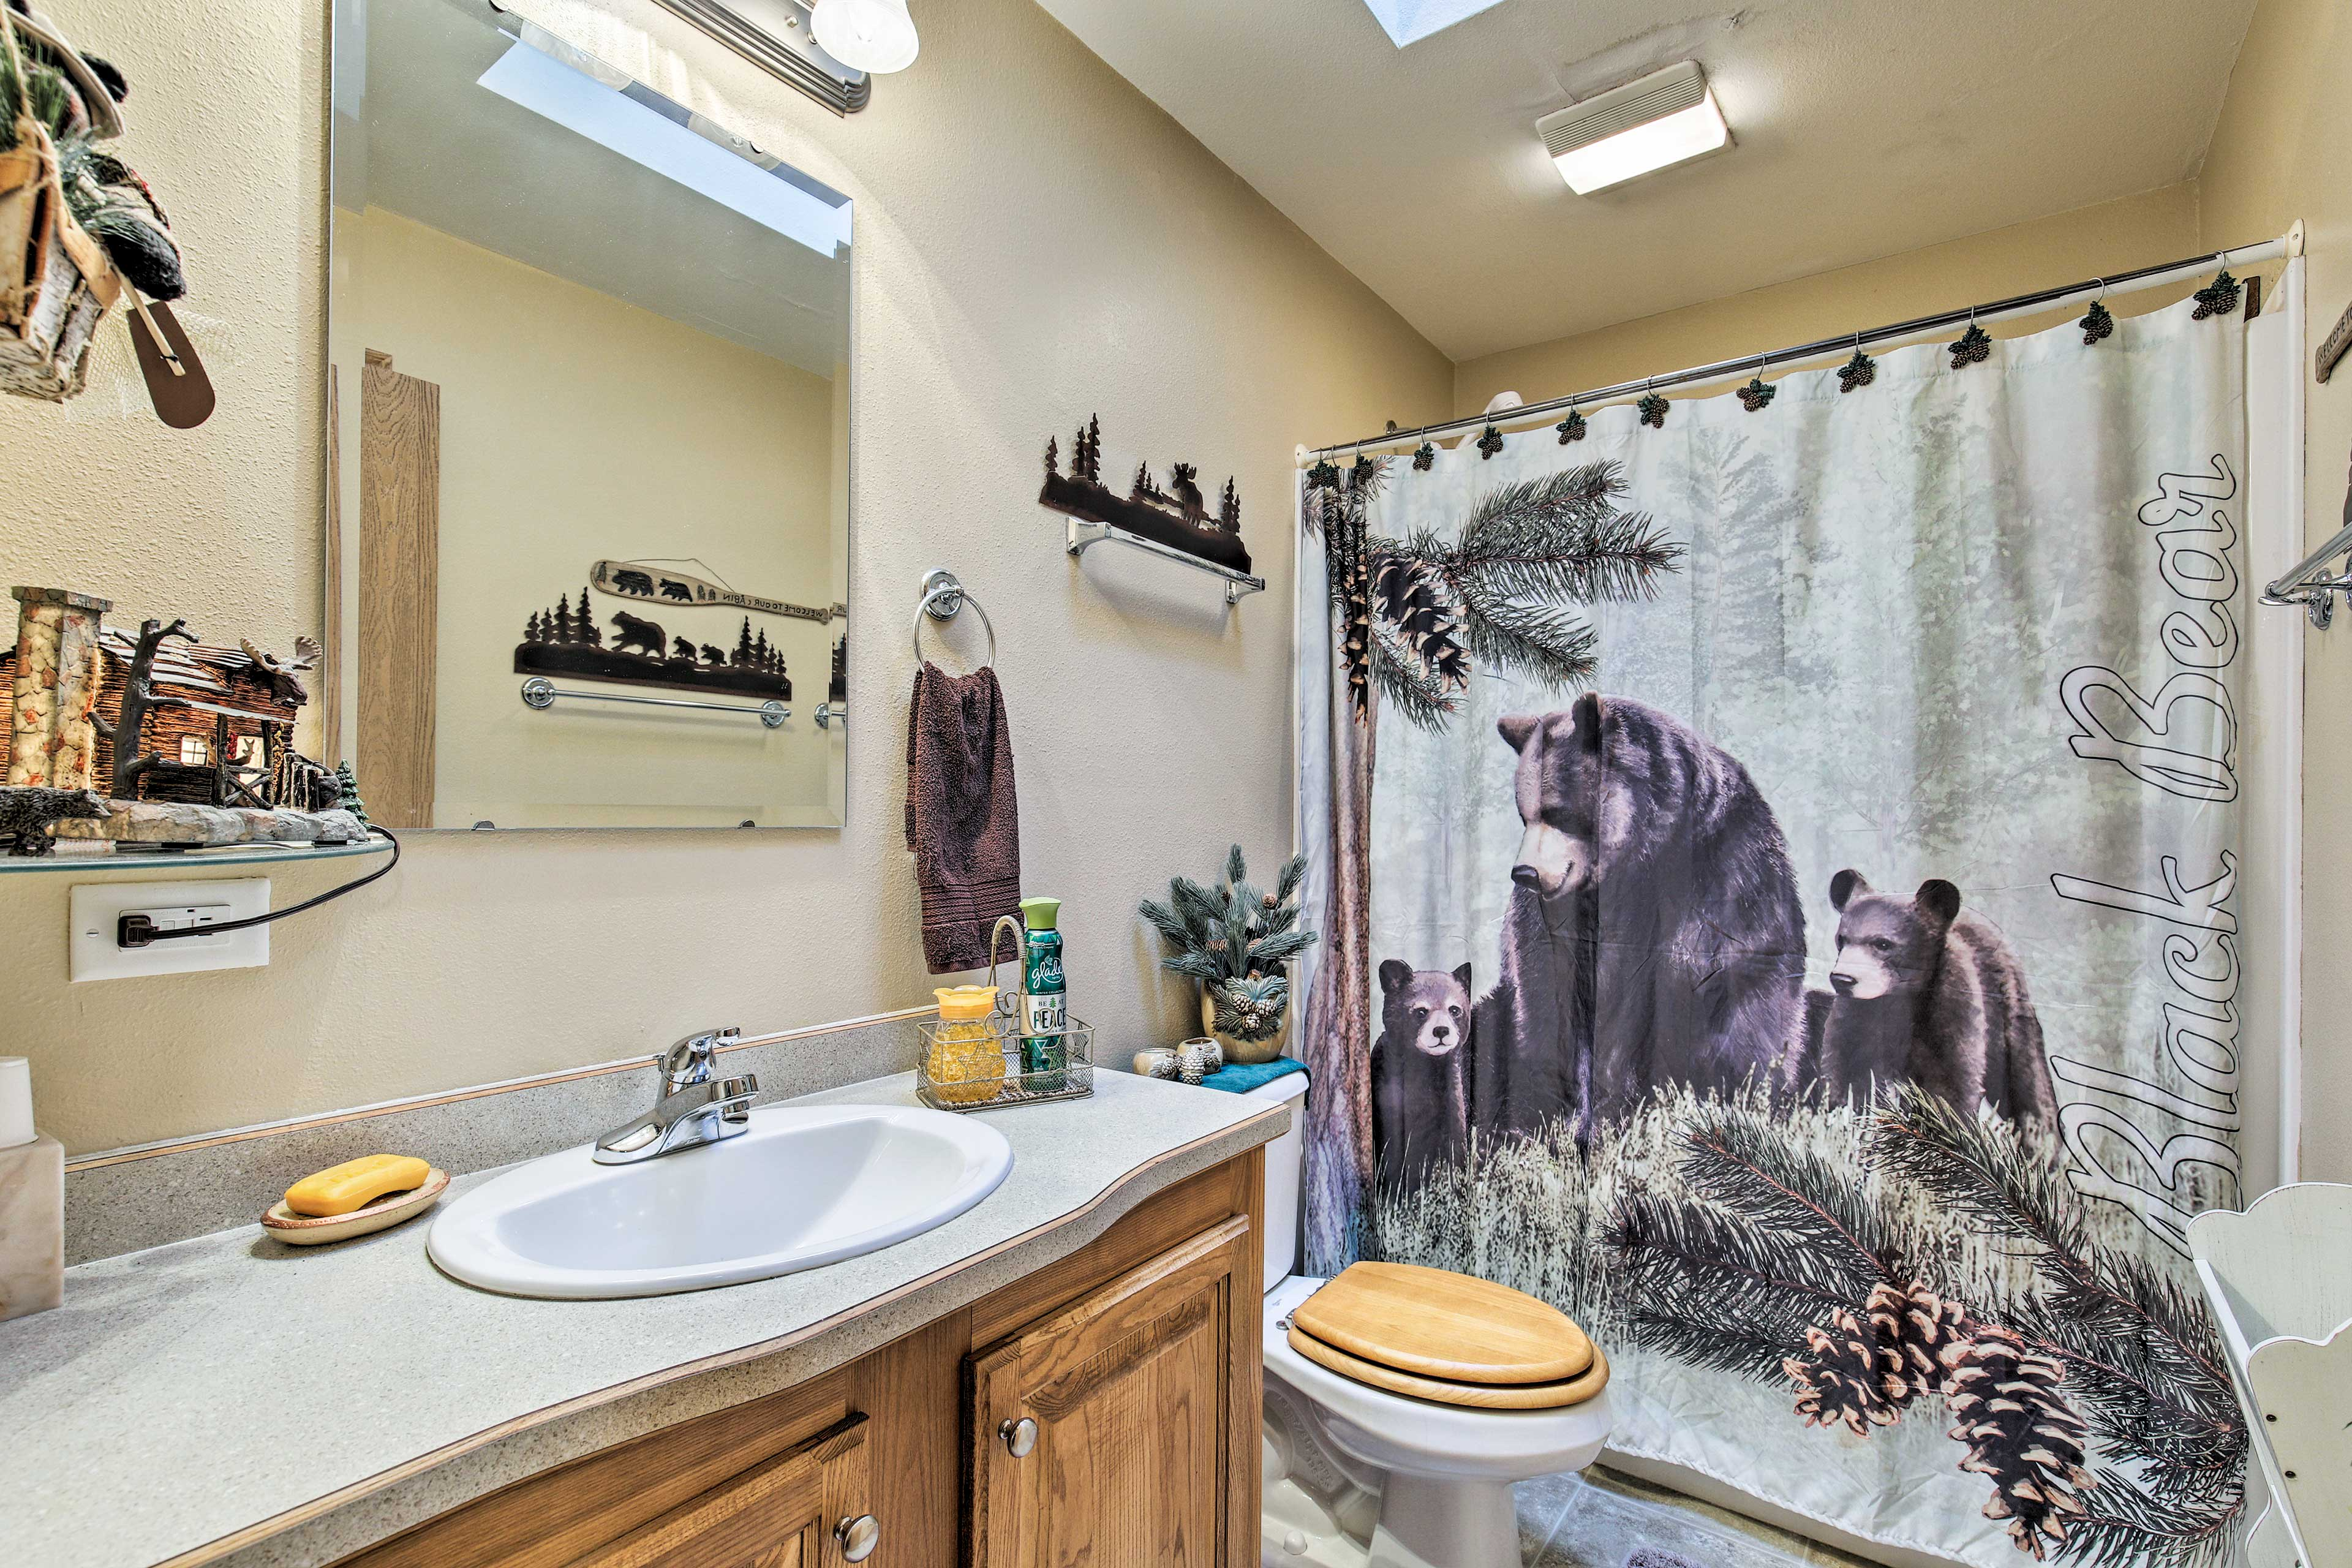 Shower off in this bear themed bathroom!